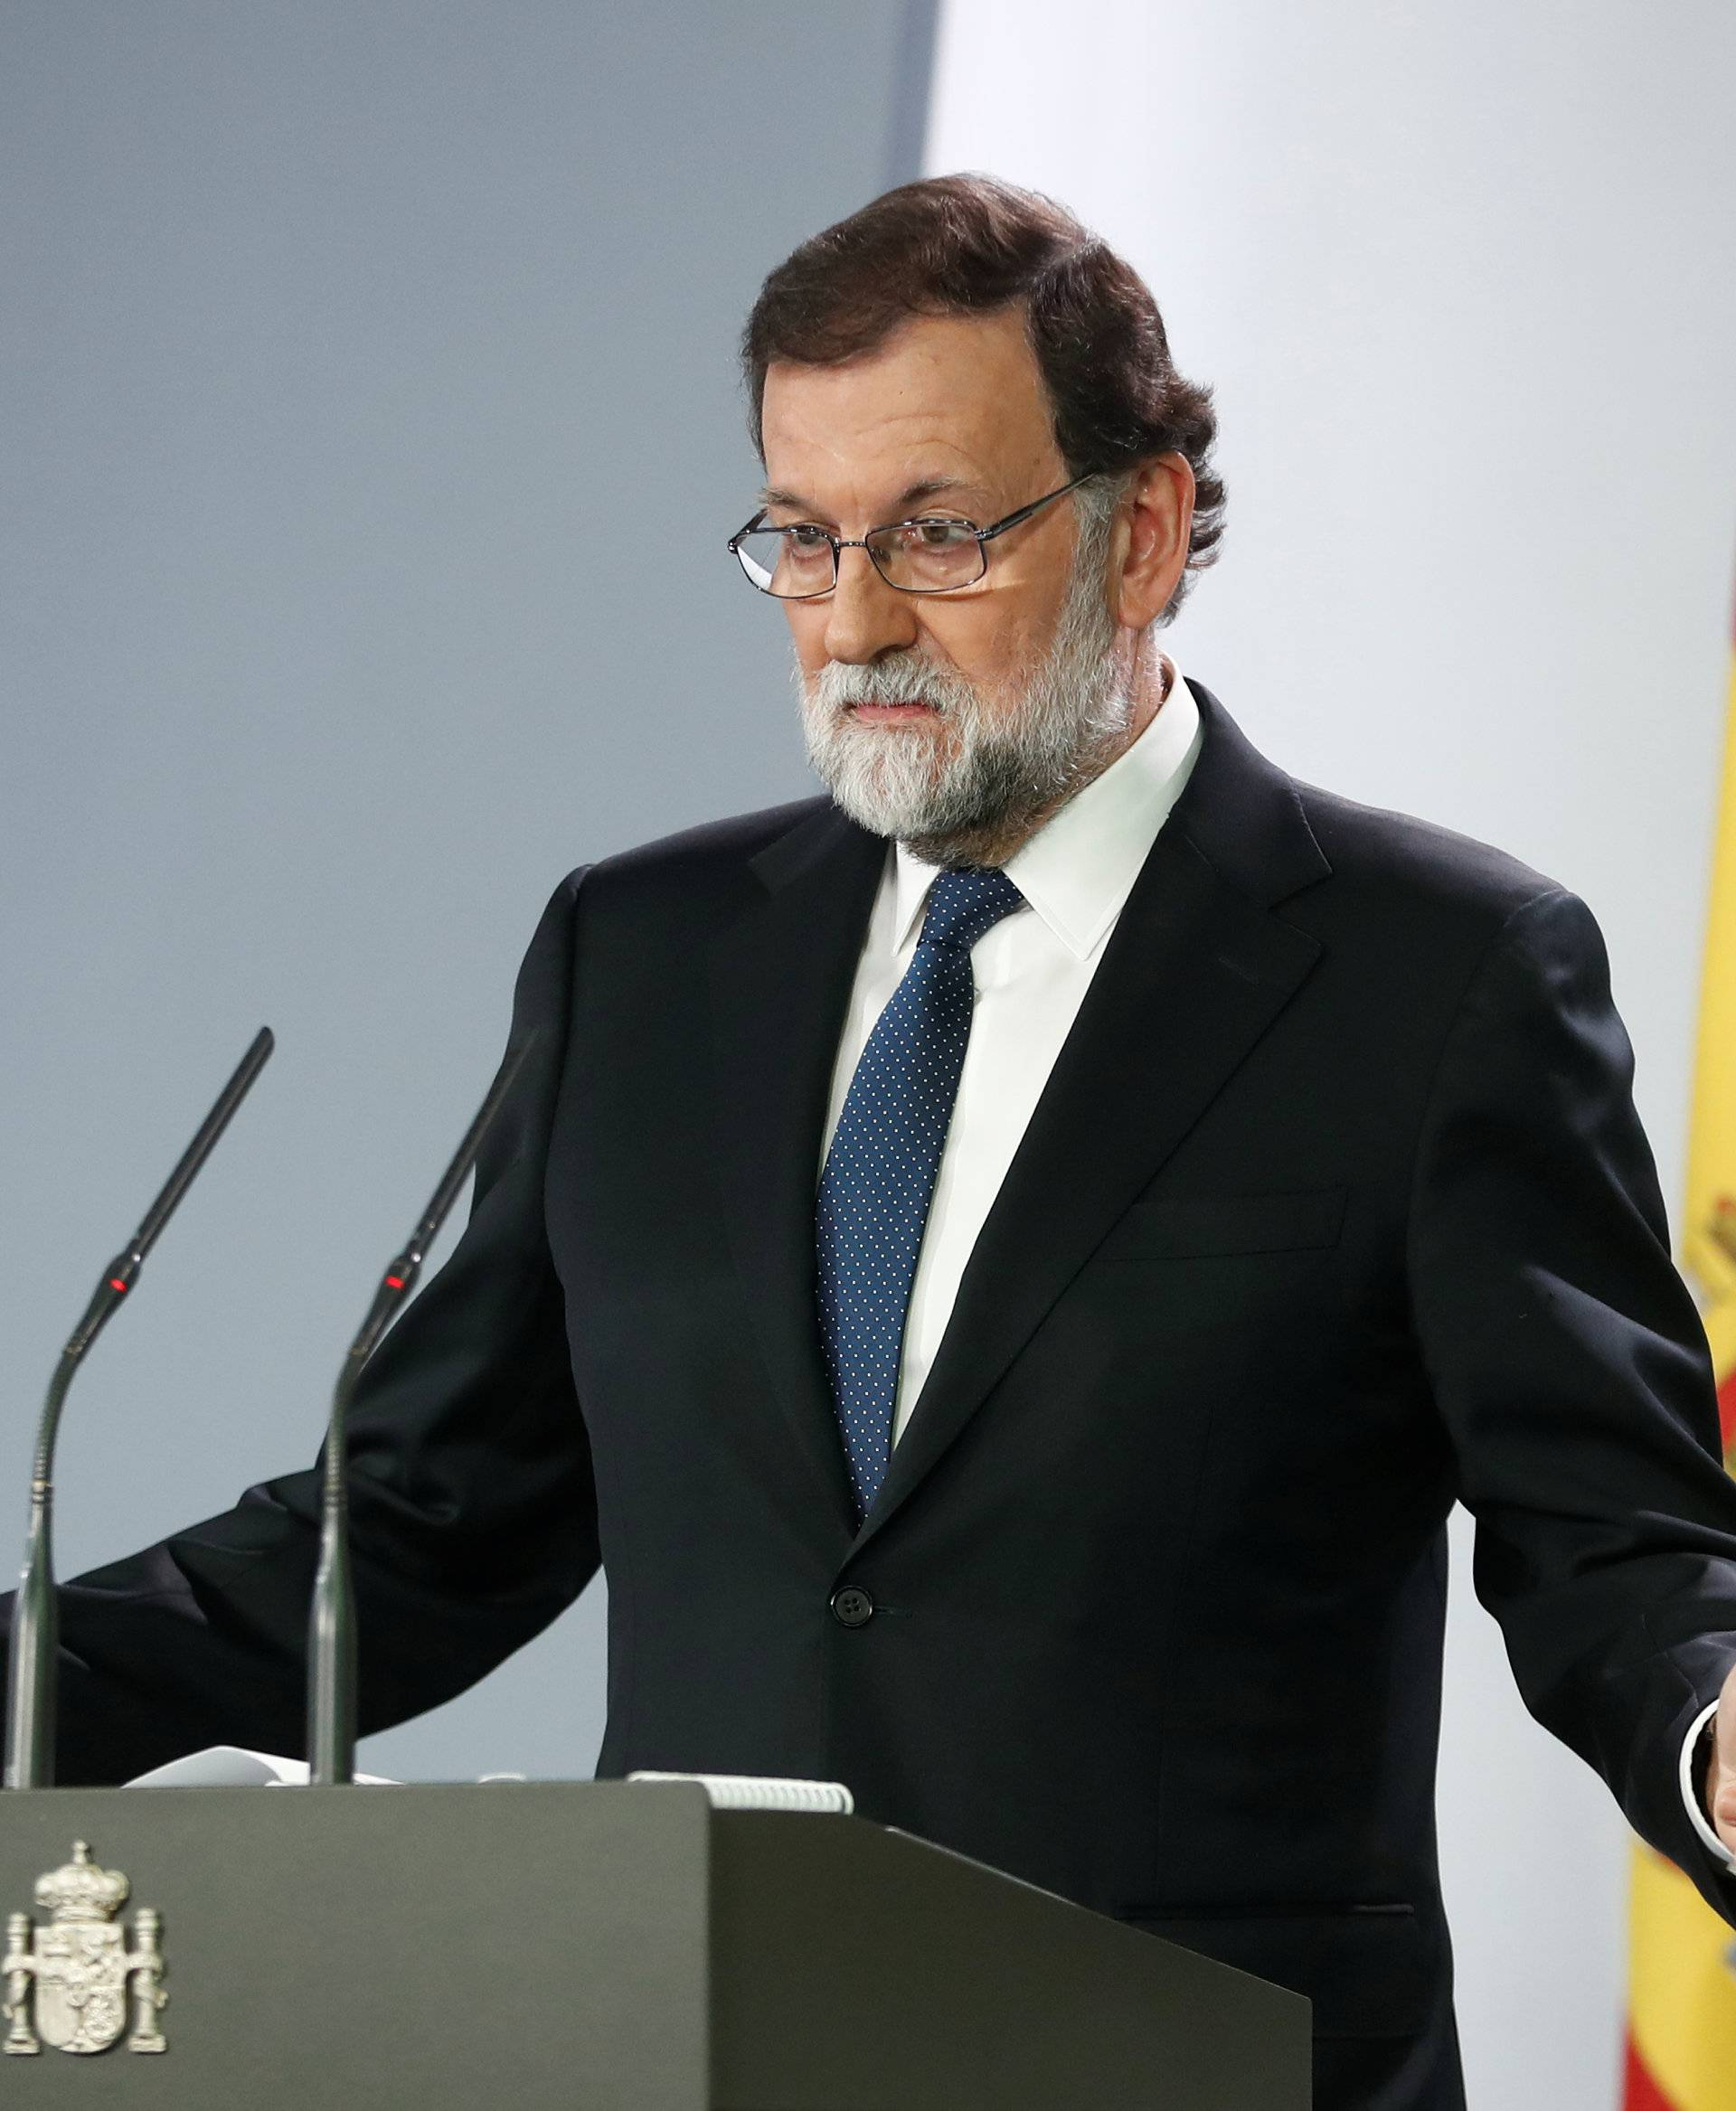 Spain's Prime Minister Mariano Rajoy speaks during a press conference at the Moncloa Palace in Madrid